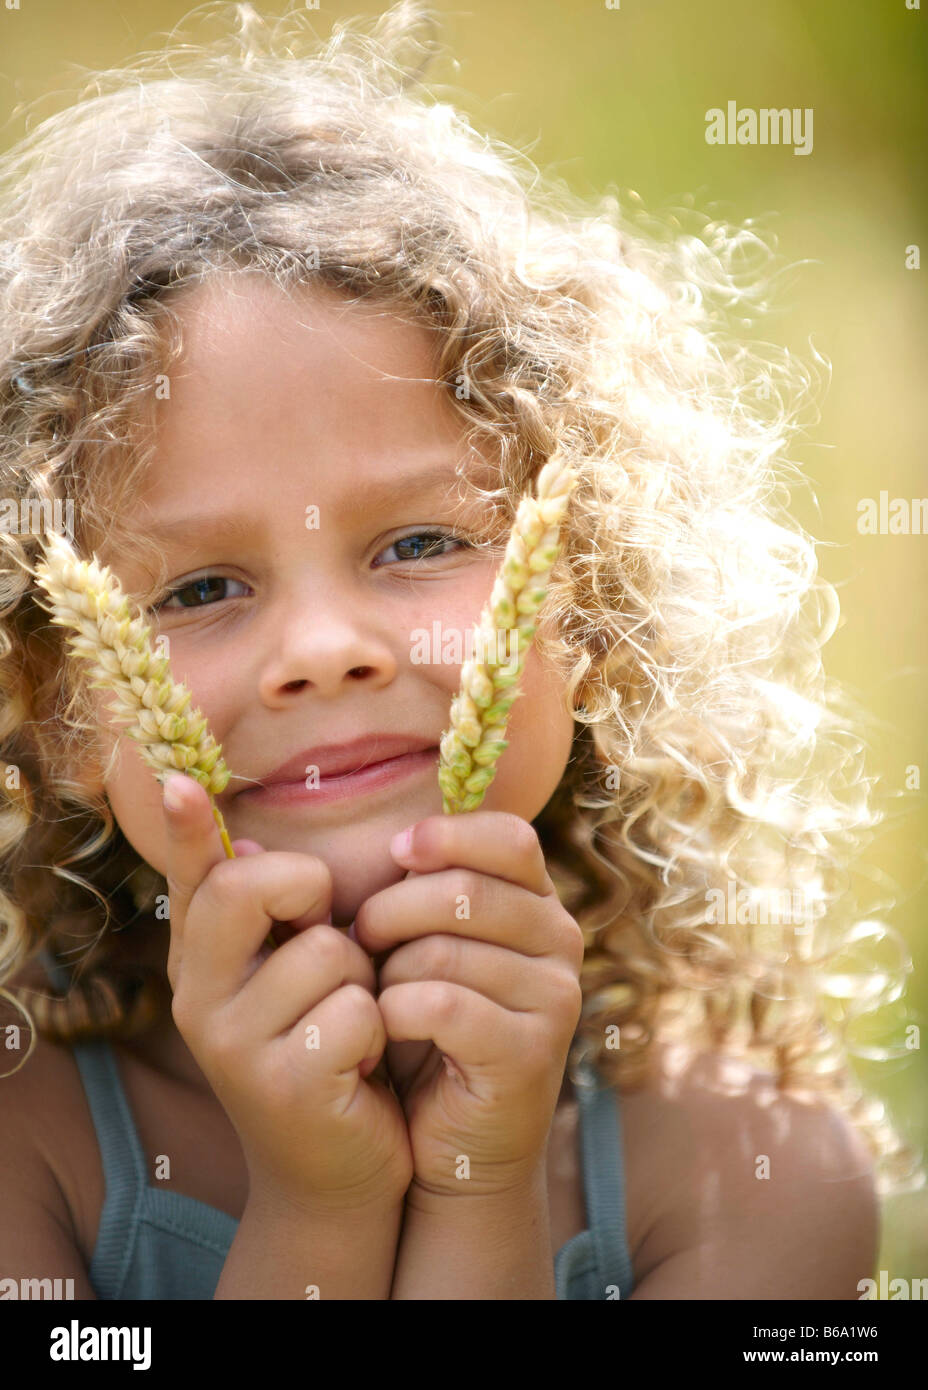 Young girl holds up ears of corn - Stock Image